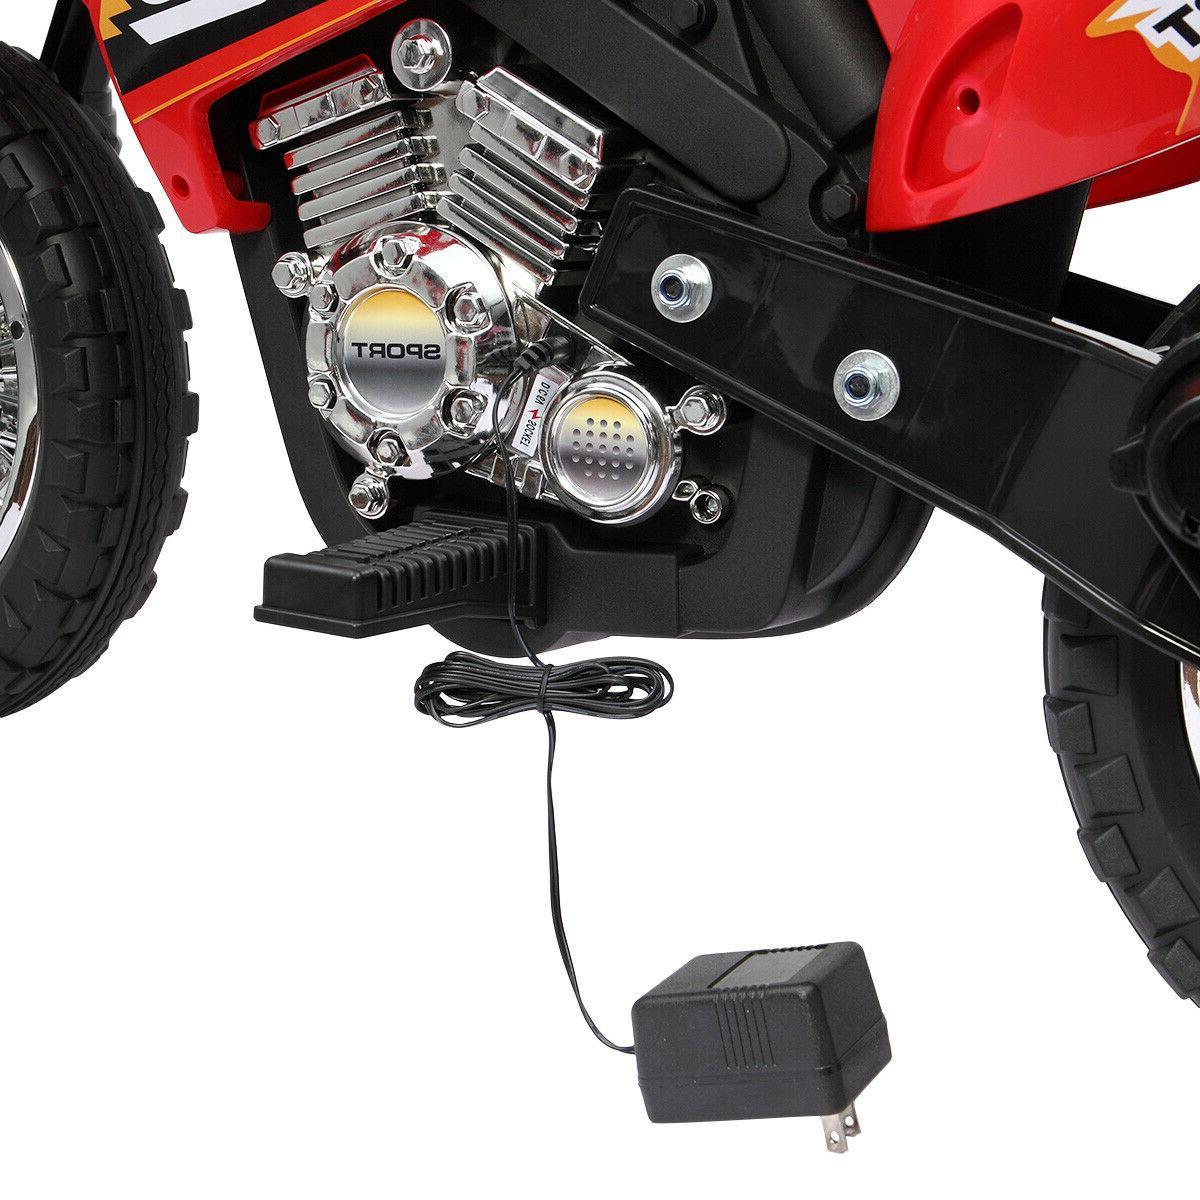 6V Kids On Motorcycle Battery w/ Training Toy New